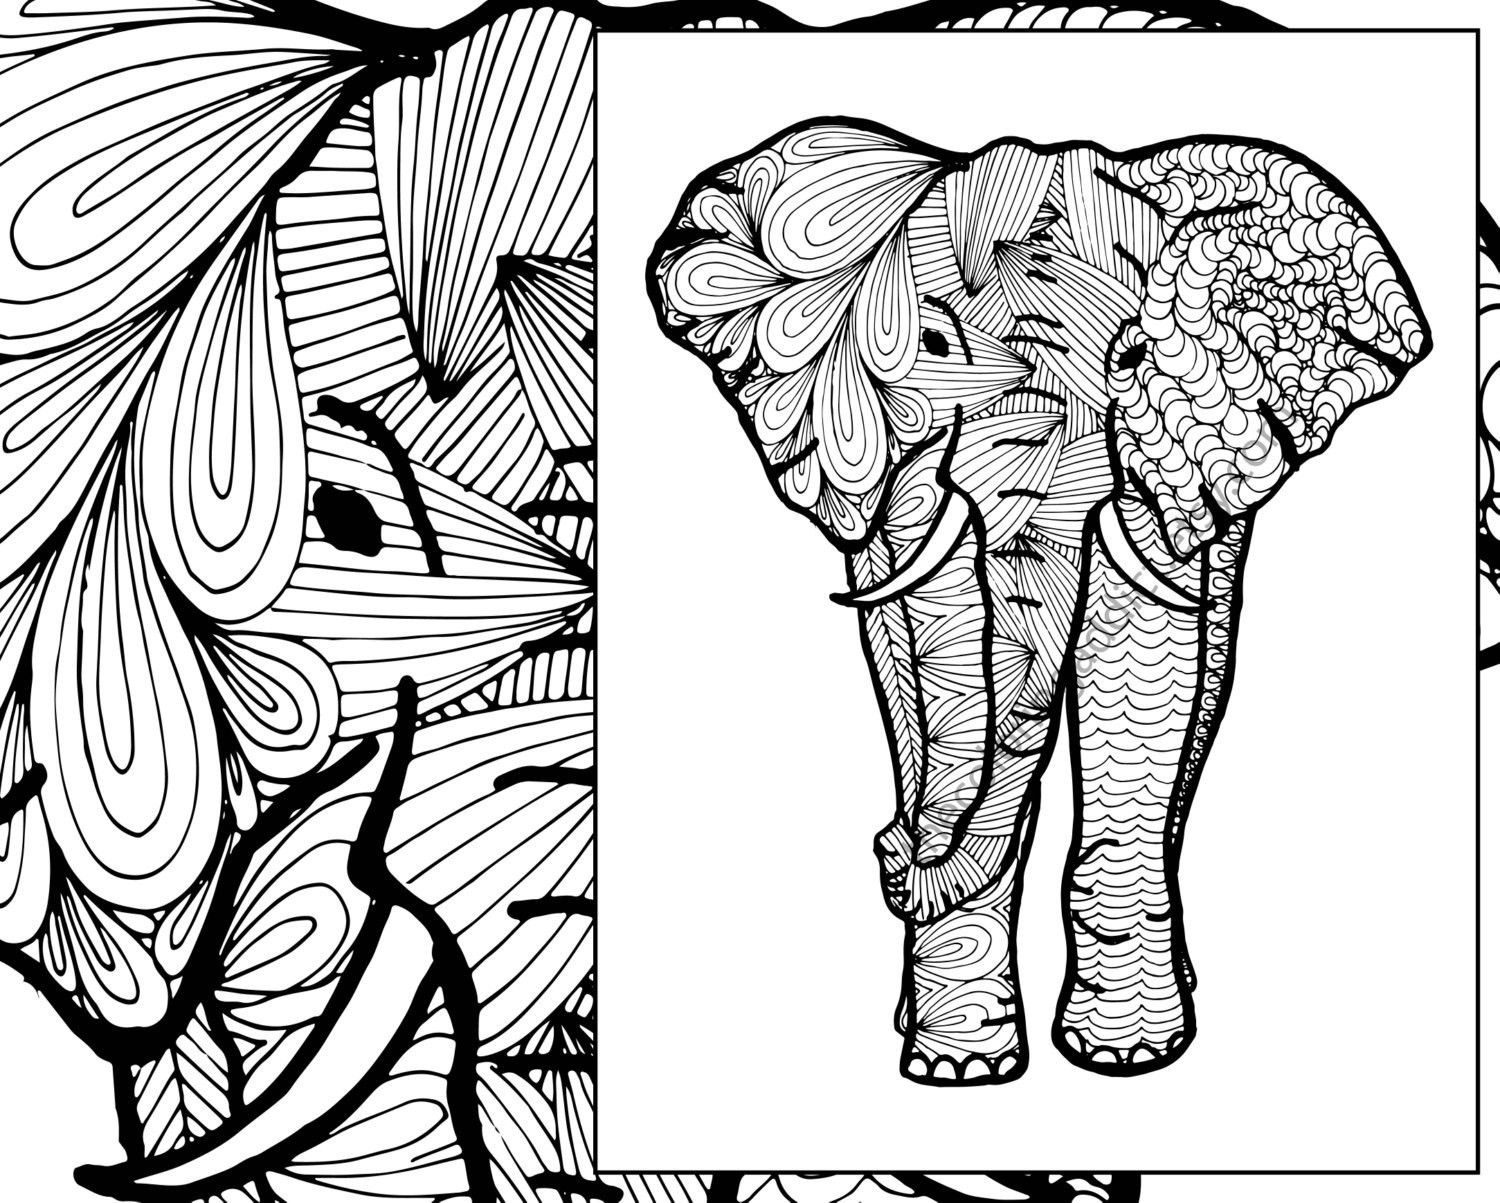 tribal-elephant-coloring-pages-for-adults-3.jpg